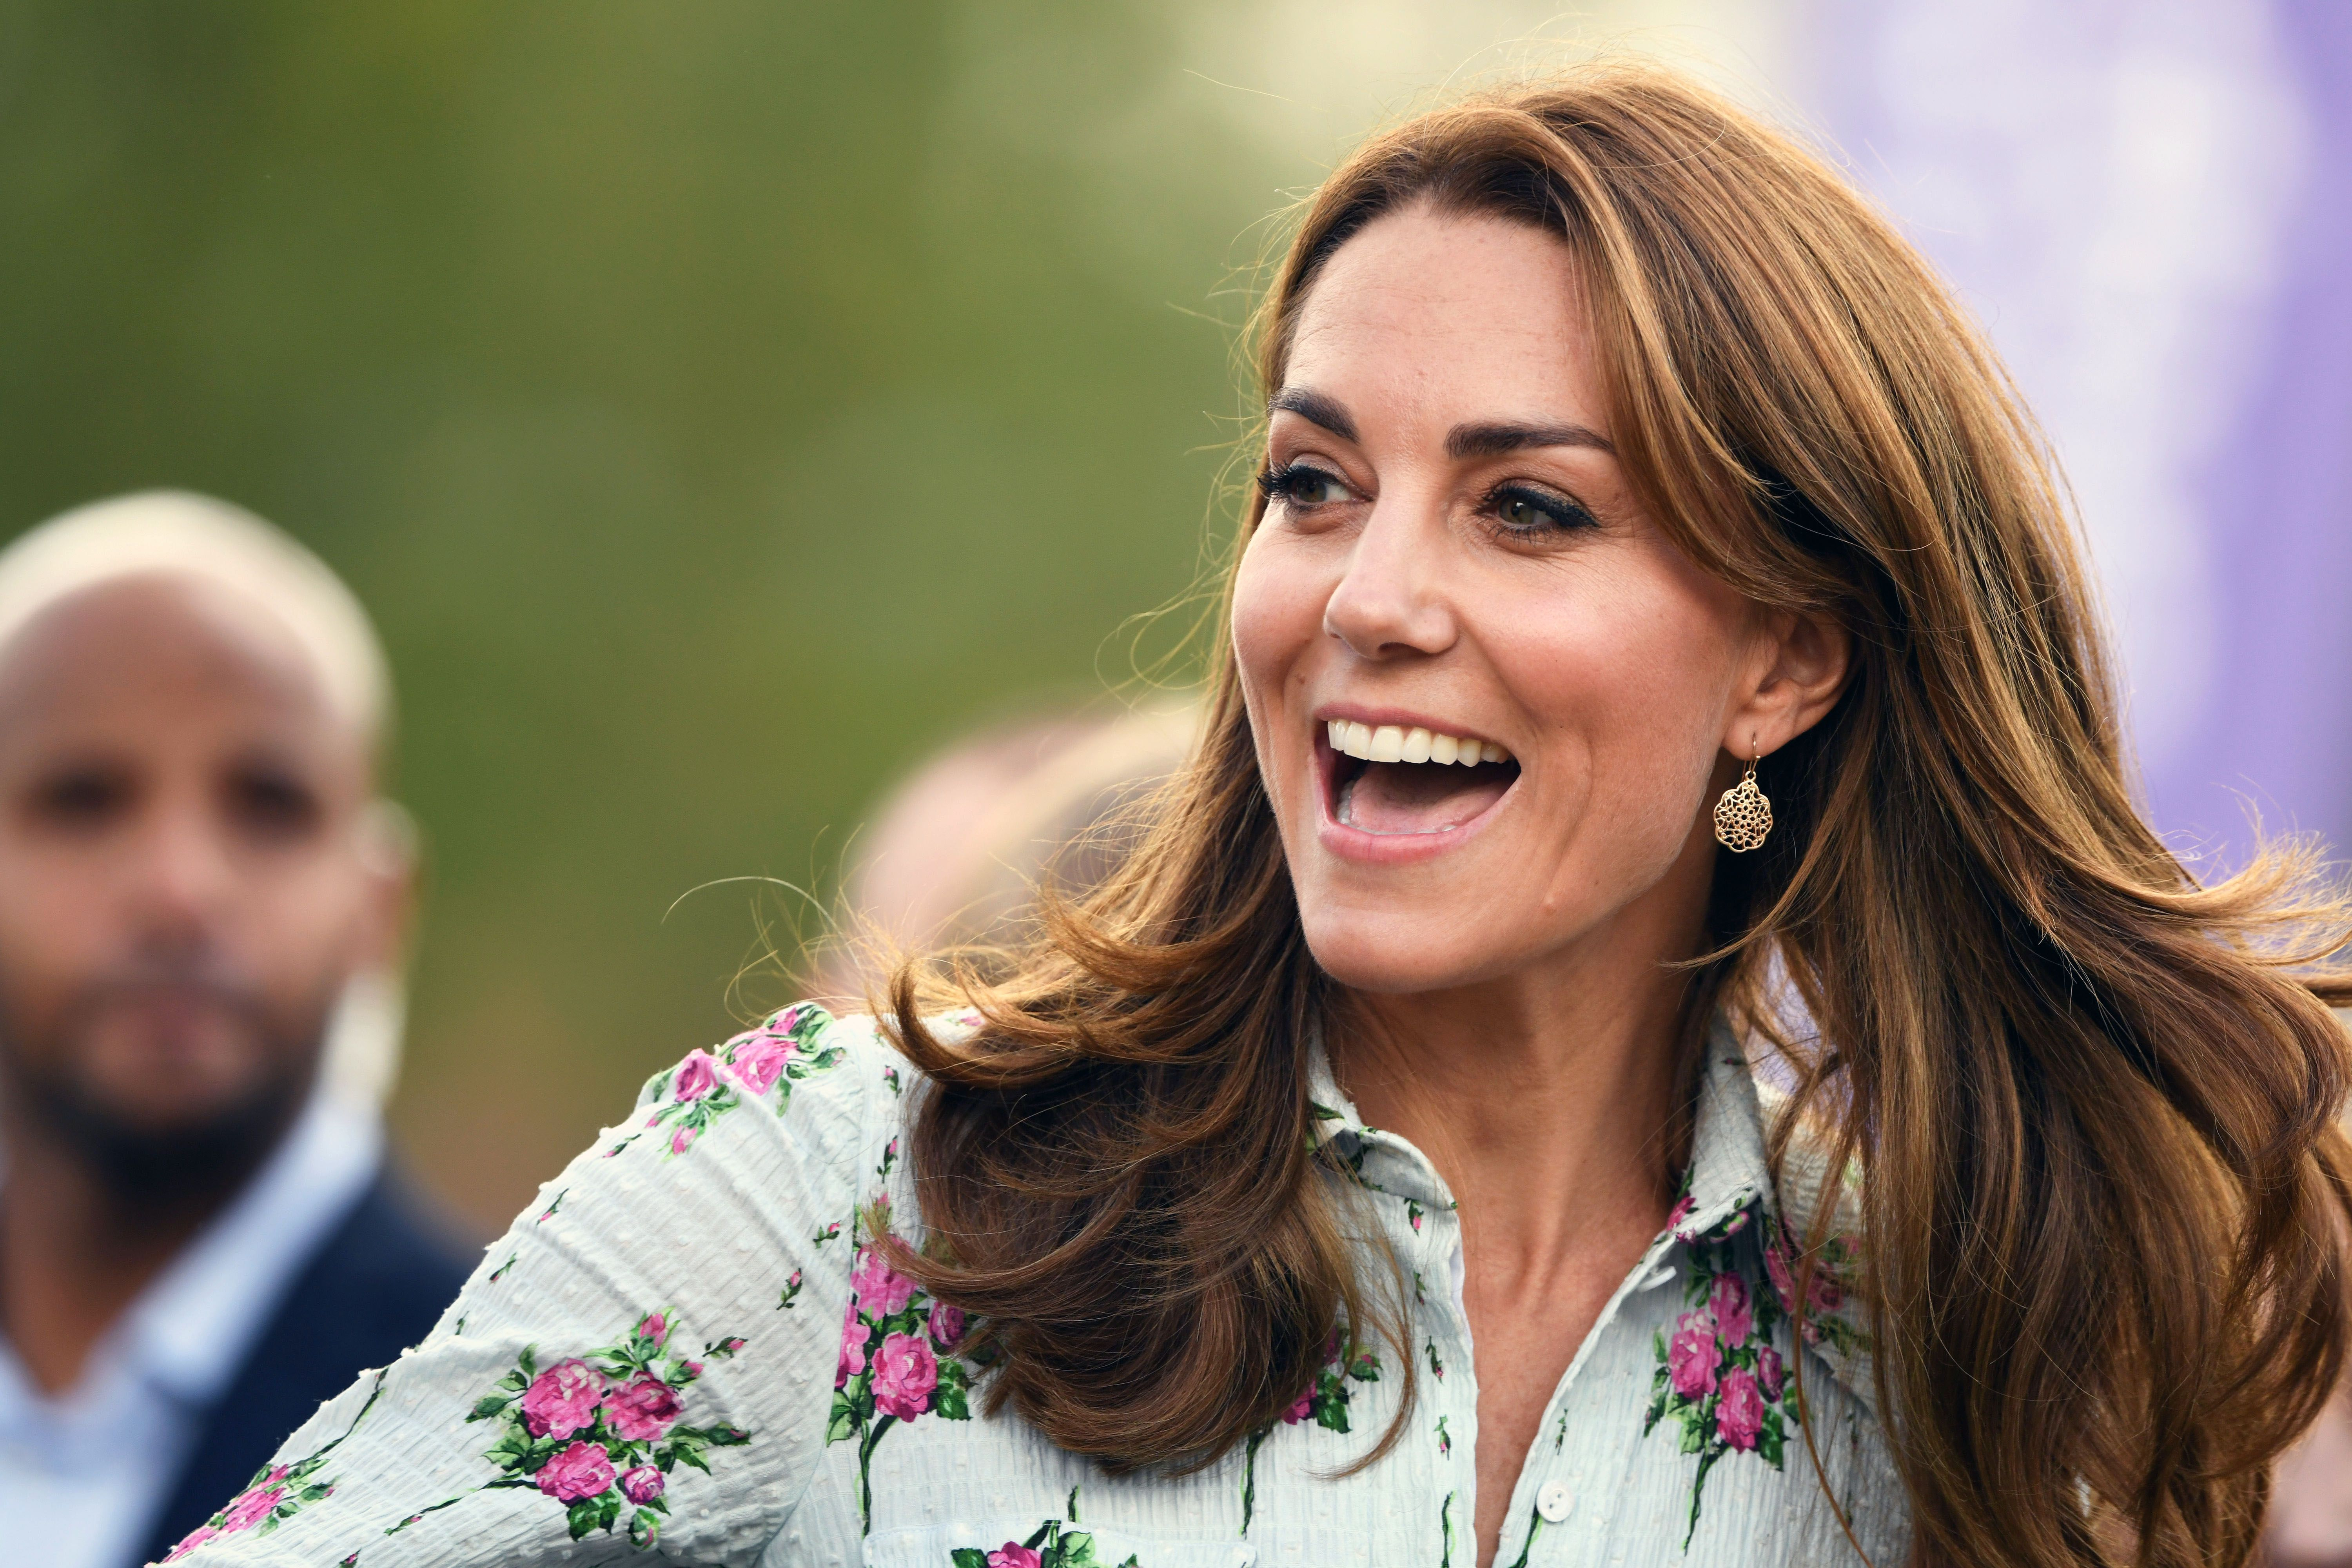 Did the Duchess of Cambridge just wear £1.50 high street earrings to the RHS Garden Festival?